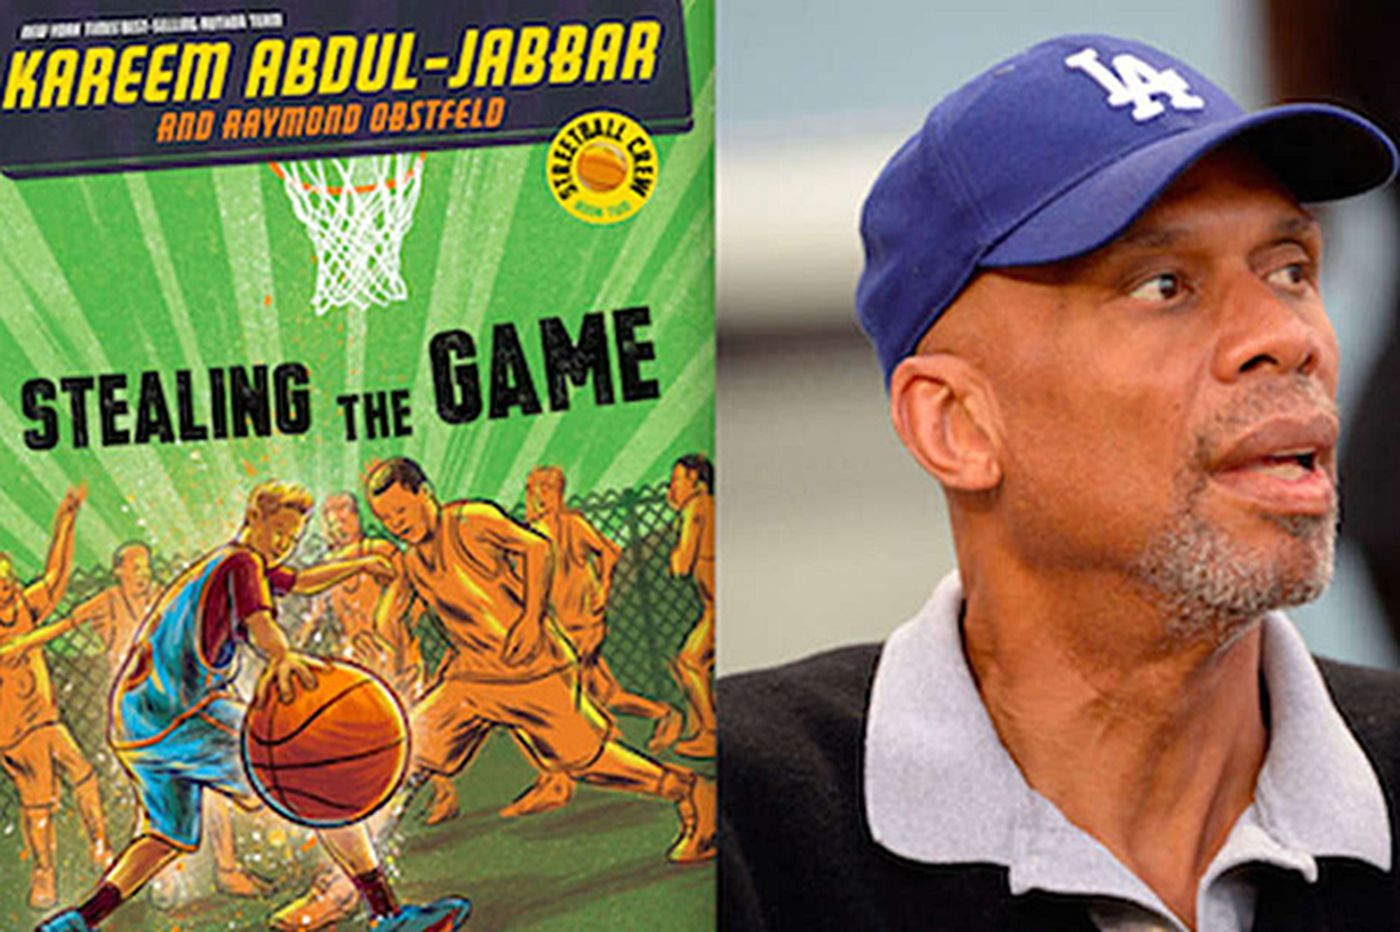 In his writing, Abdul-Jabbar has a lot to say